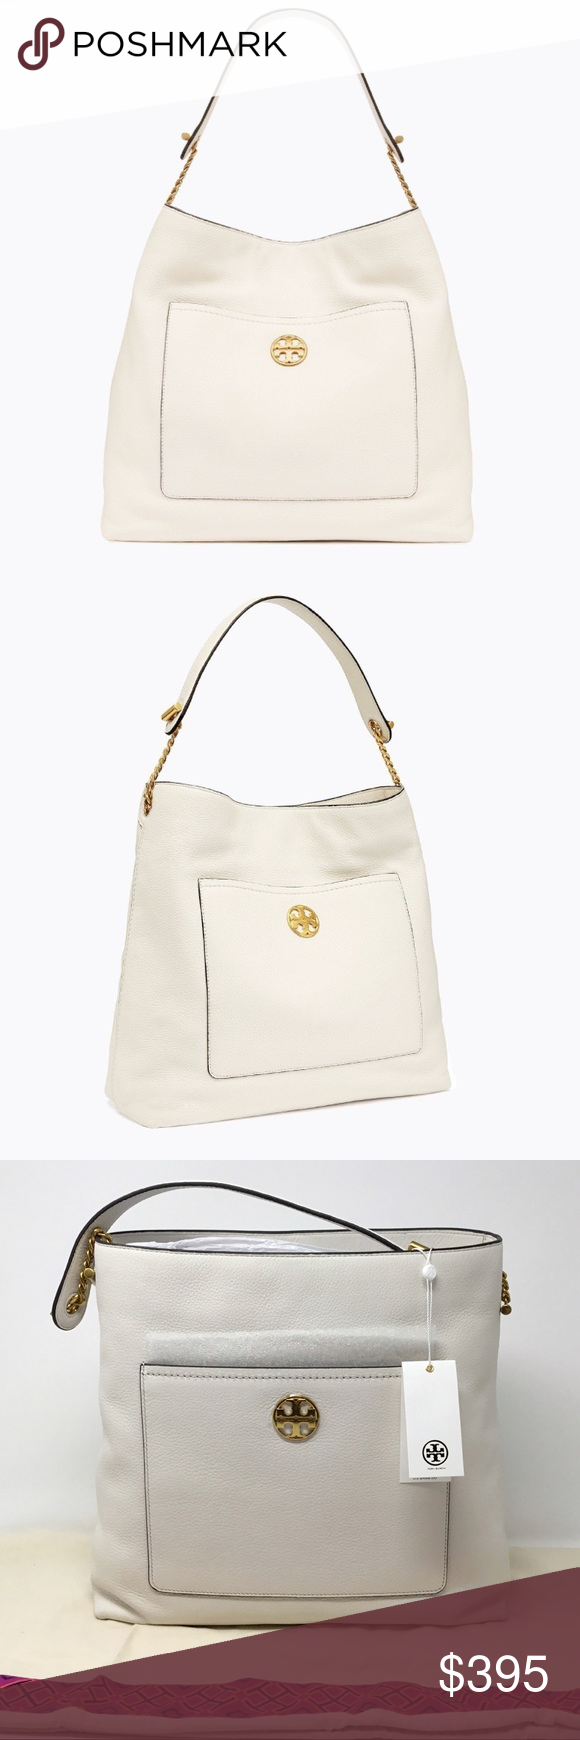 ced34b3bf192 NEW TORY BURCH CHELSEA CHAIN HOBO SAME DAY SHIPPING USPS 1-3 DAY PRIORITY  MAIL